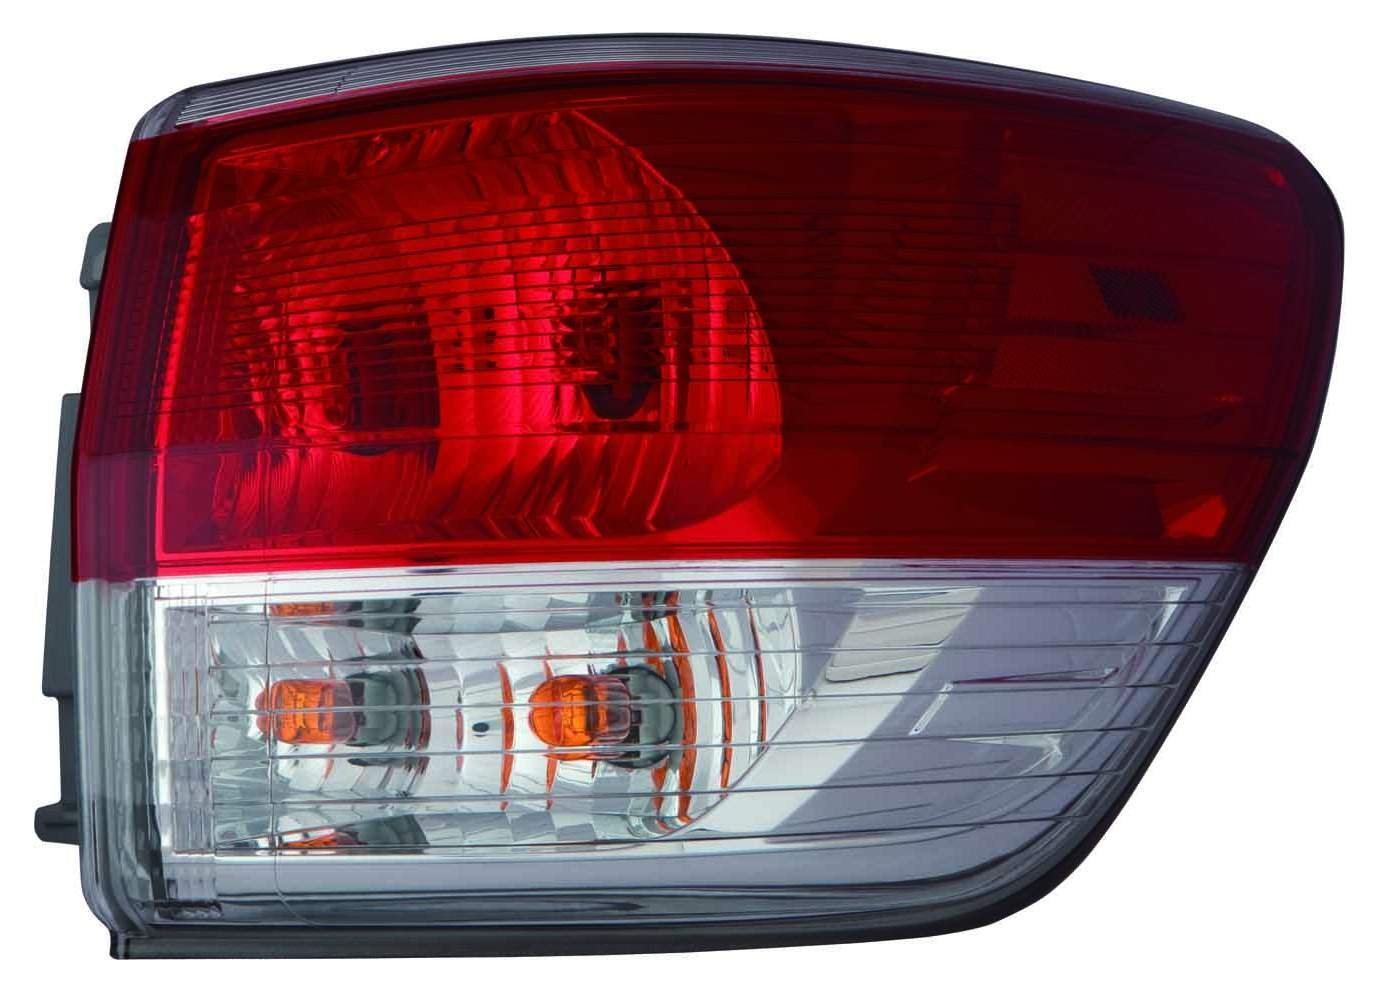 TYC NSF Certified Right Side Tail Light Lamp for Nissan Pathfinder 2013-2015